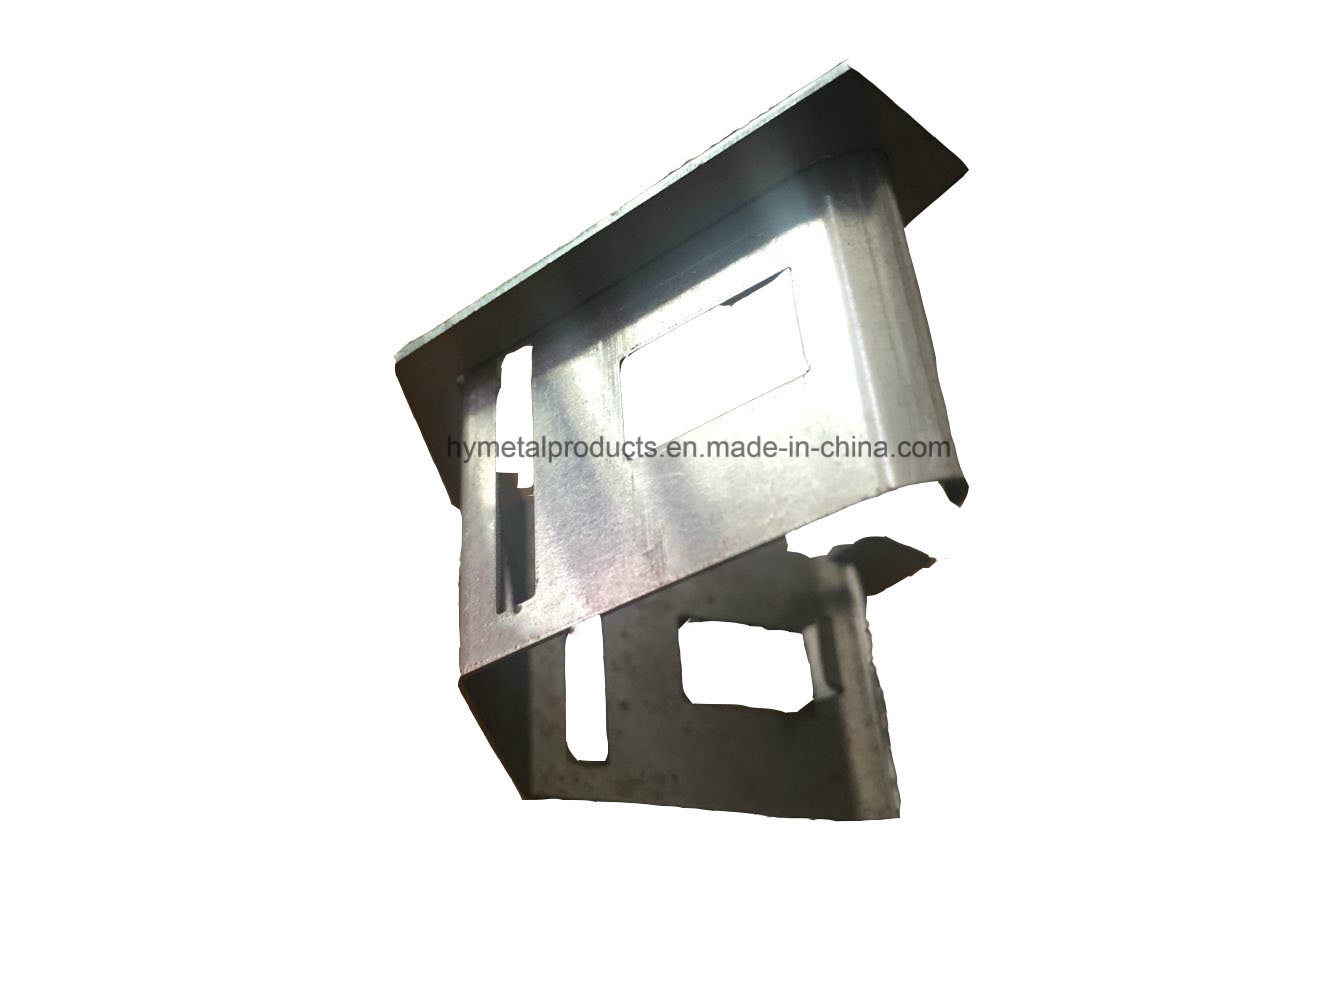 High Quality Metal Stamping Part, Bending Part. OEM Manufacture